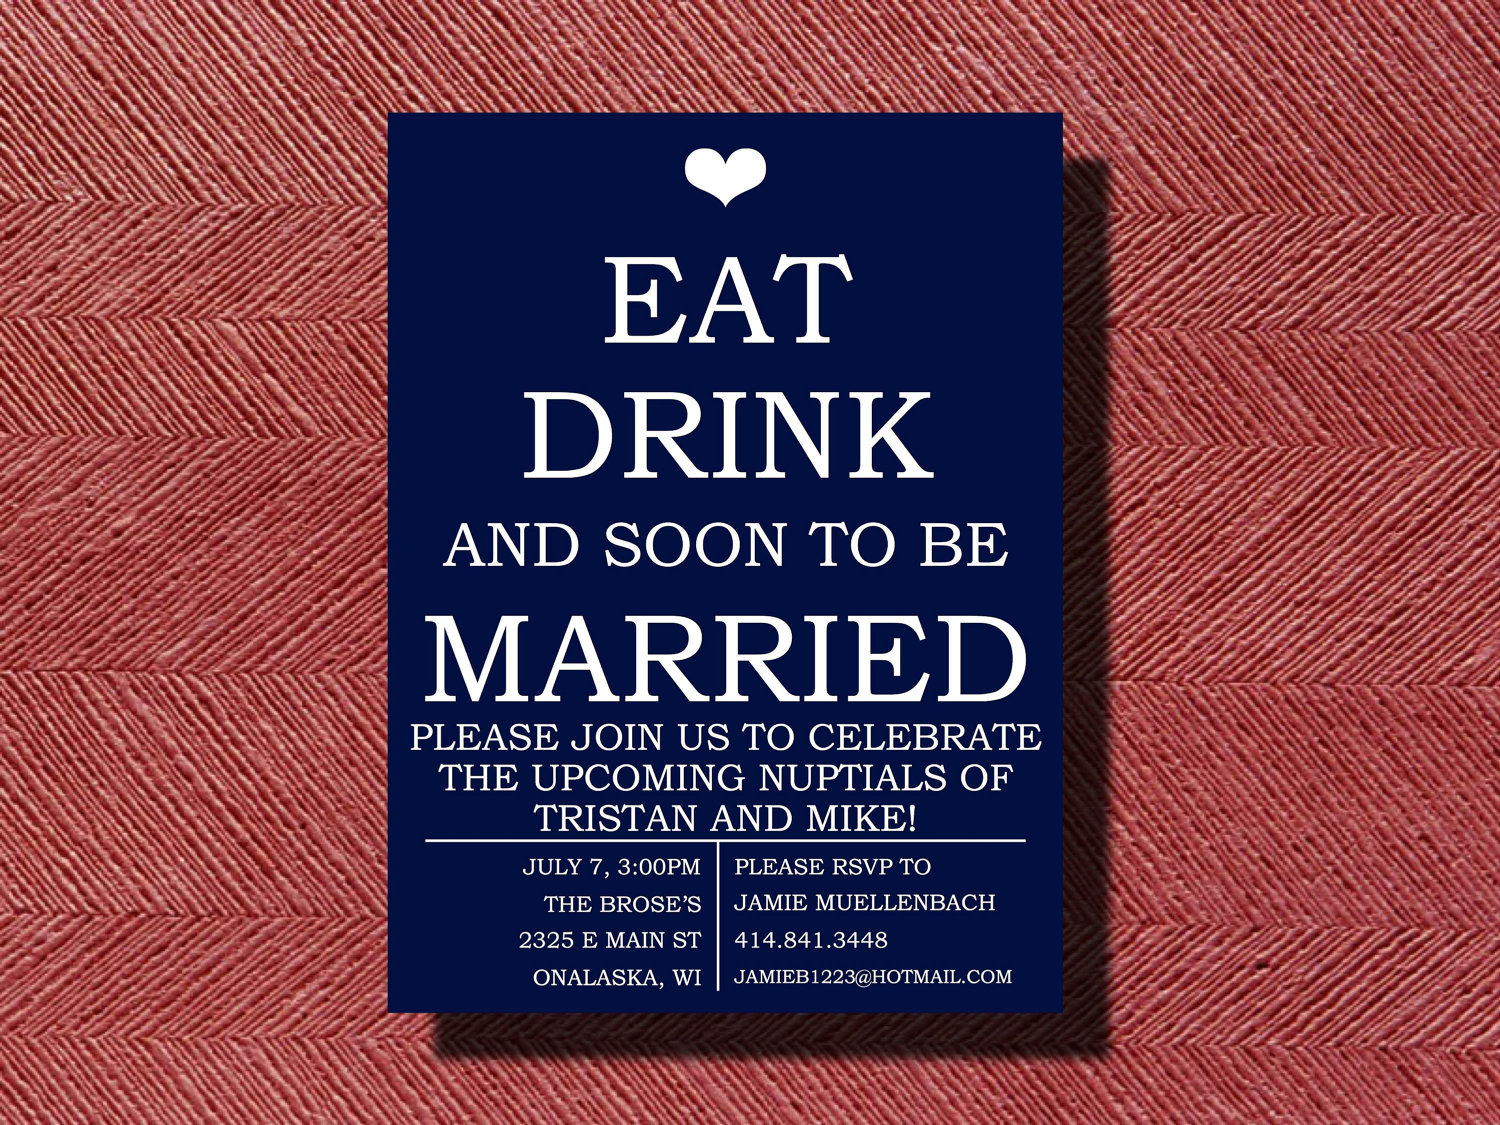 Engagement Party Invitation Eat Drink and be Married | Etsy